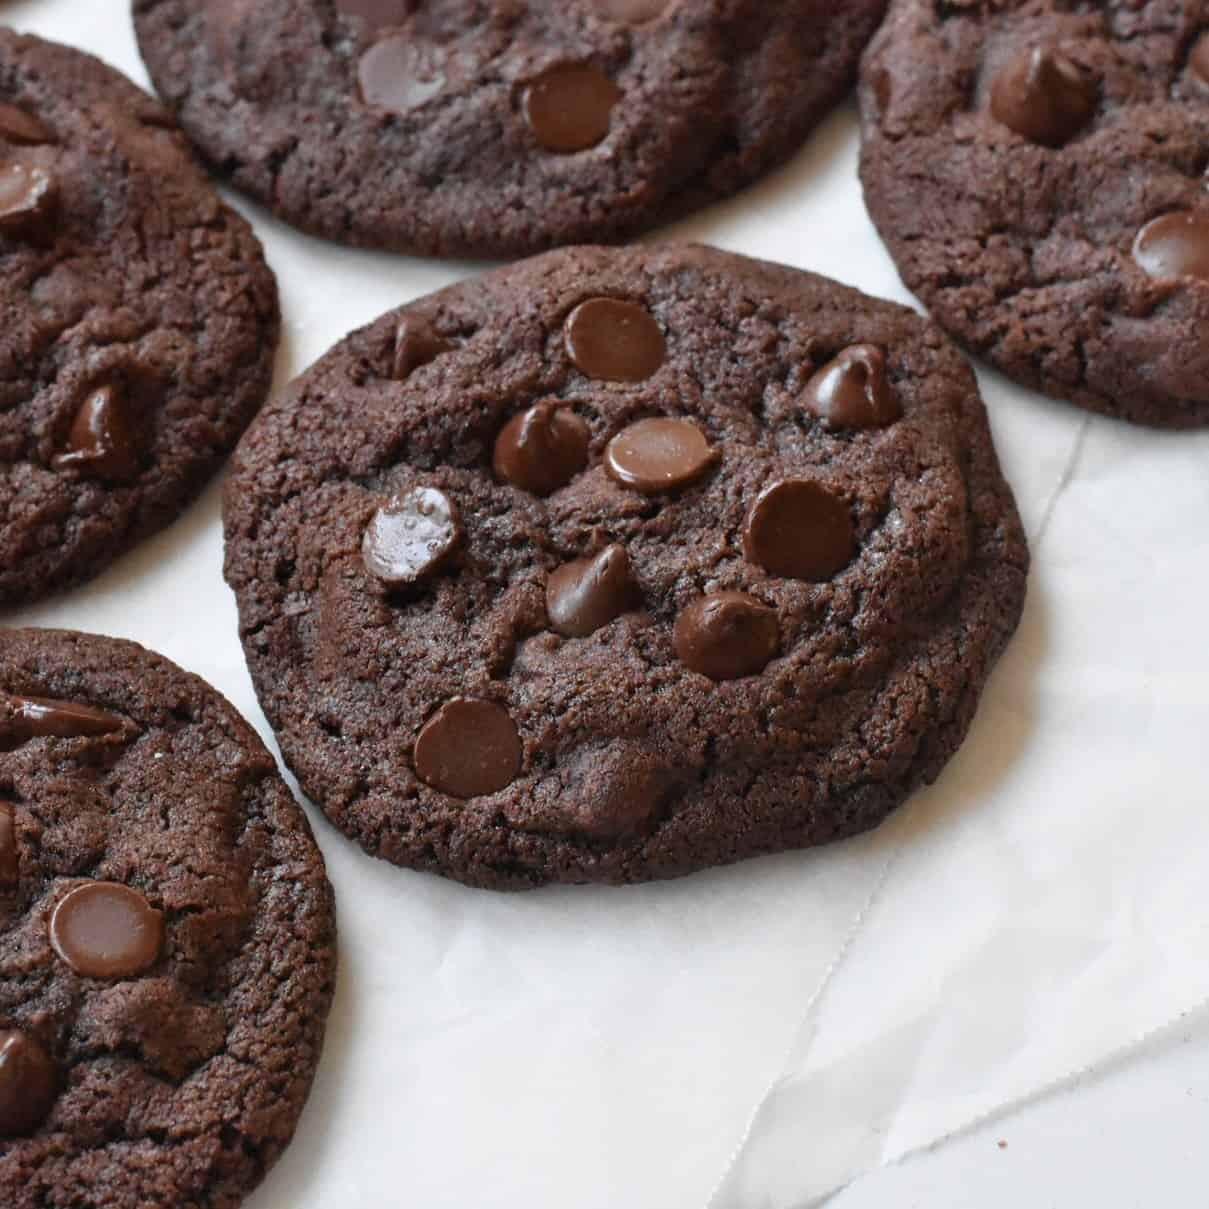 Double Chocolate Chip Cookie on display.